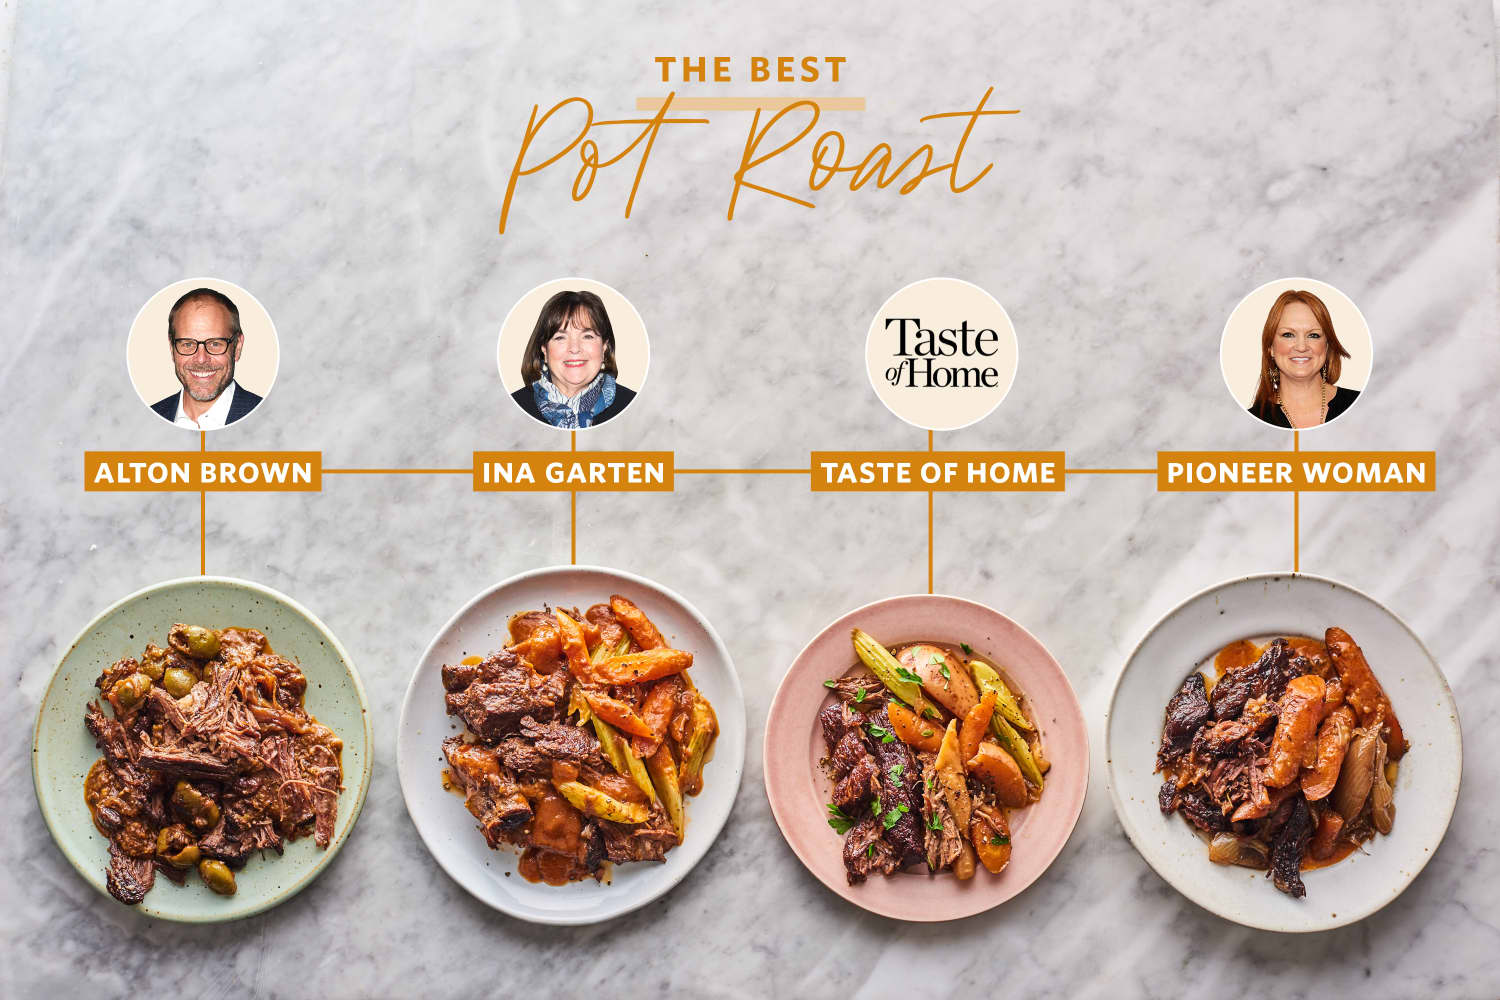 We Tested 4 Famous Pot Roast Recipes and Found a Clear Winner